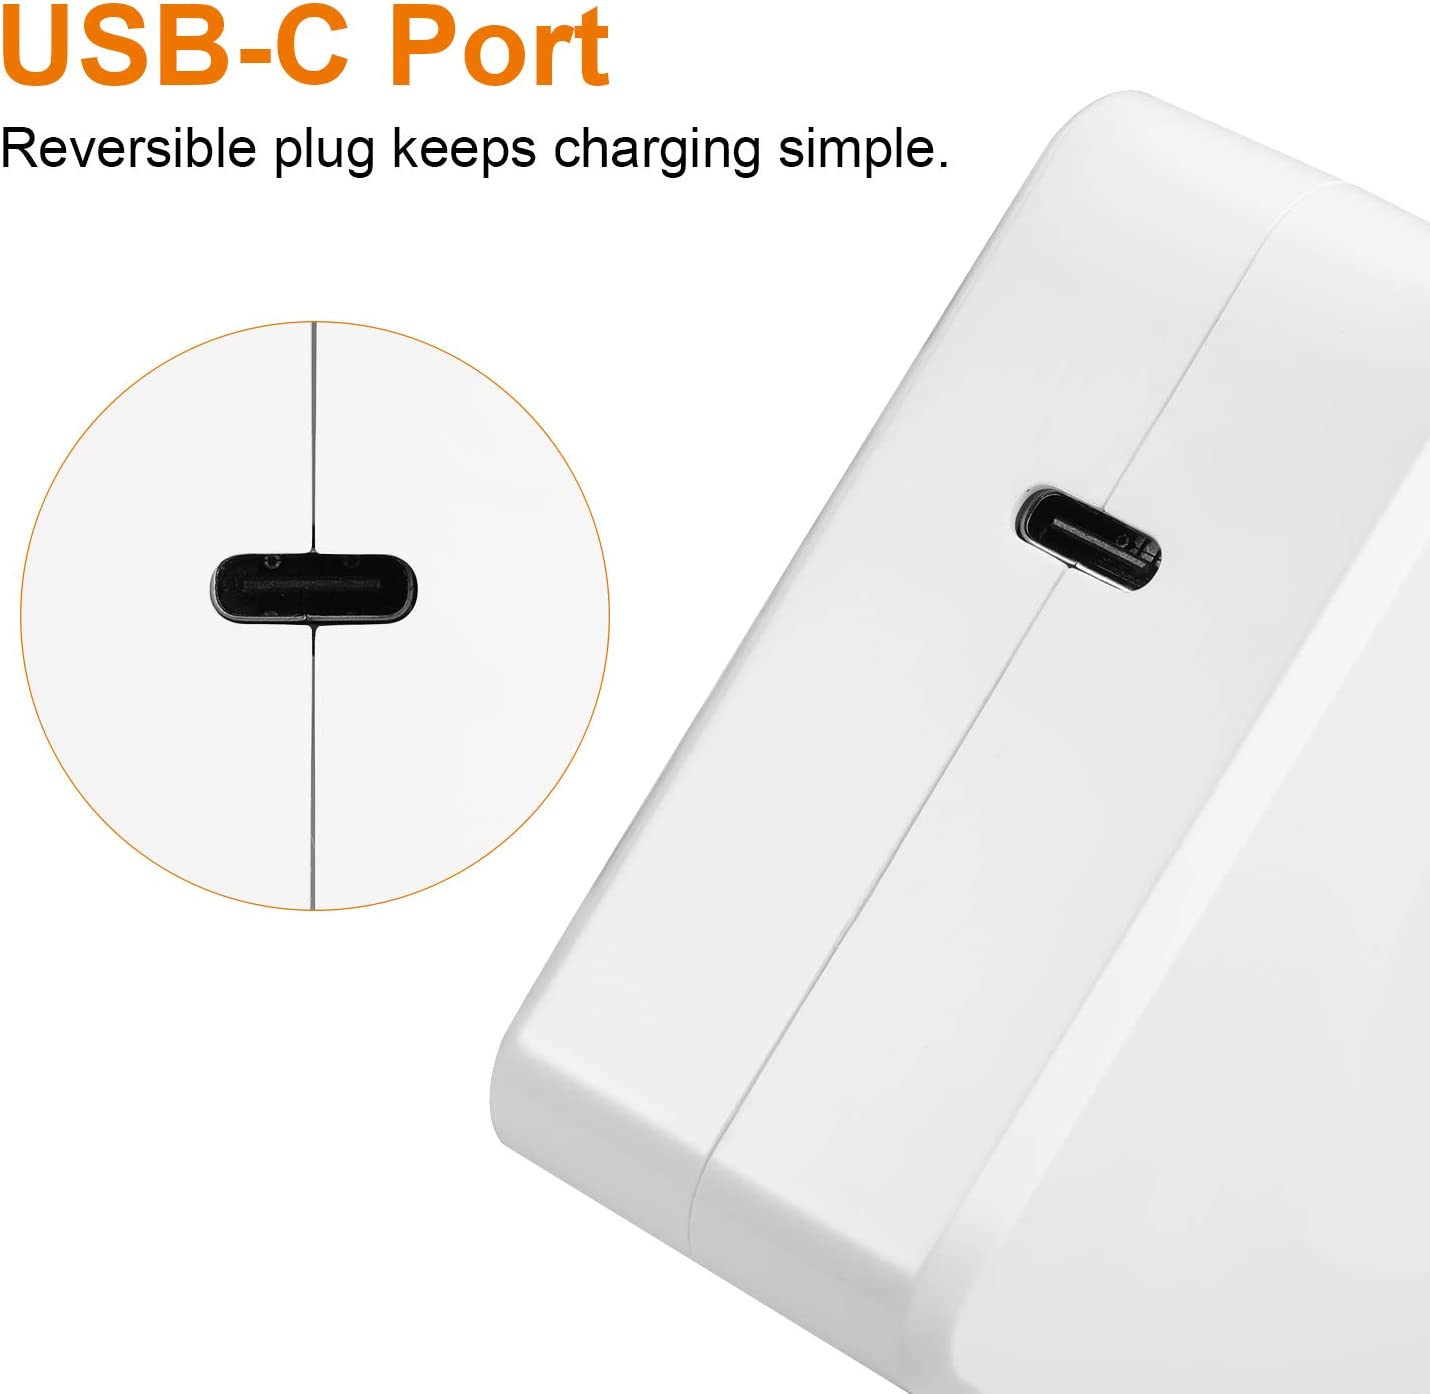 Meonxy 45W PD 3.0 Type C Fast Charging Power Adapter with USB Type C to USB 3.0 Adapter Ipad Pro 2018 and More USB C Wall Charger White Compatible with iPhone 11//Pro//Max MacBook Pro//Air